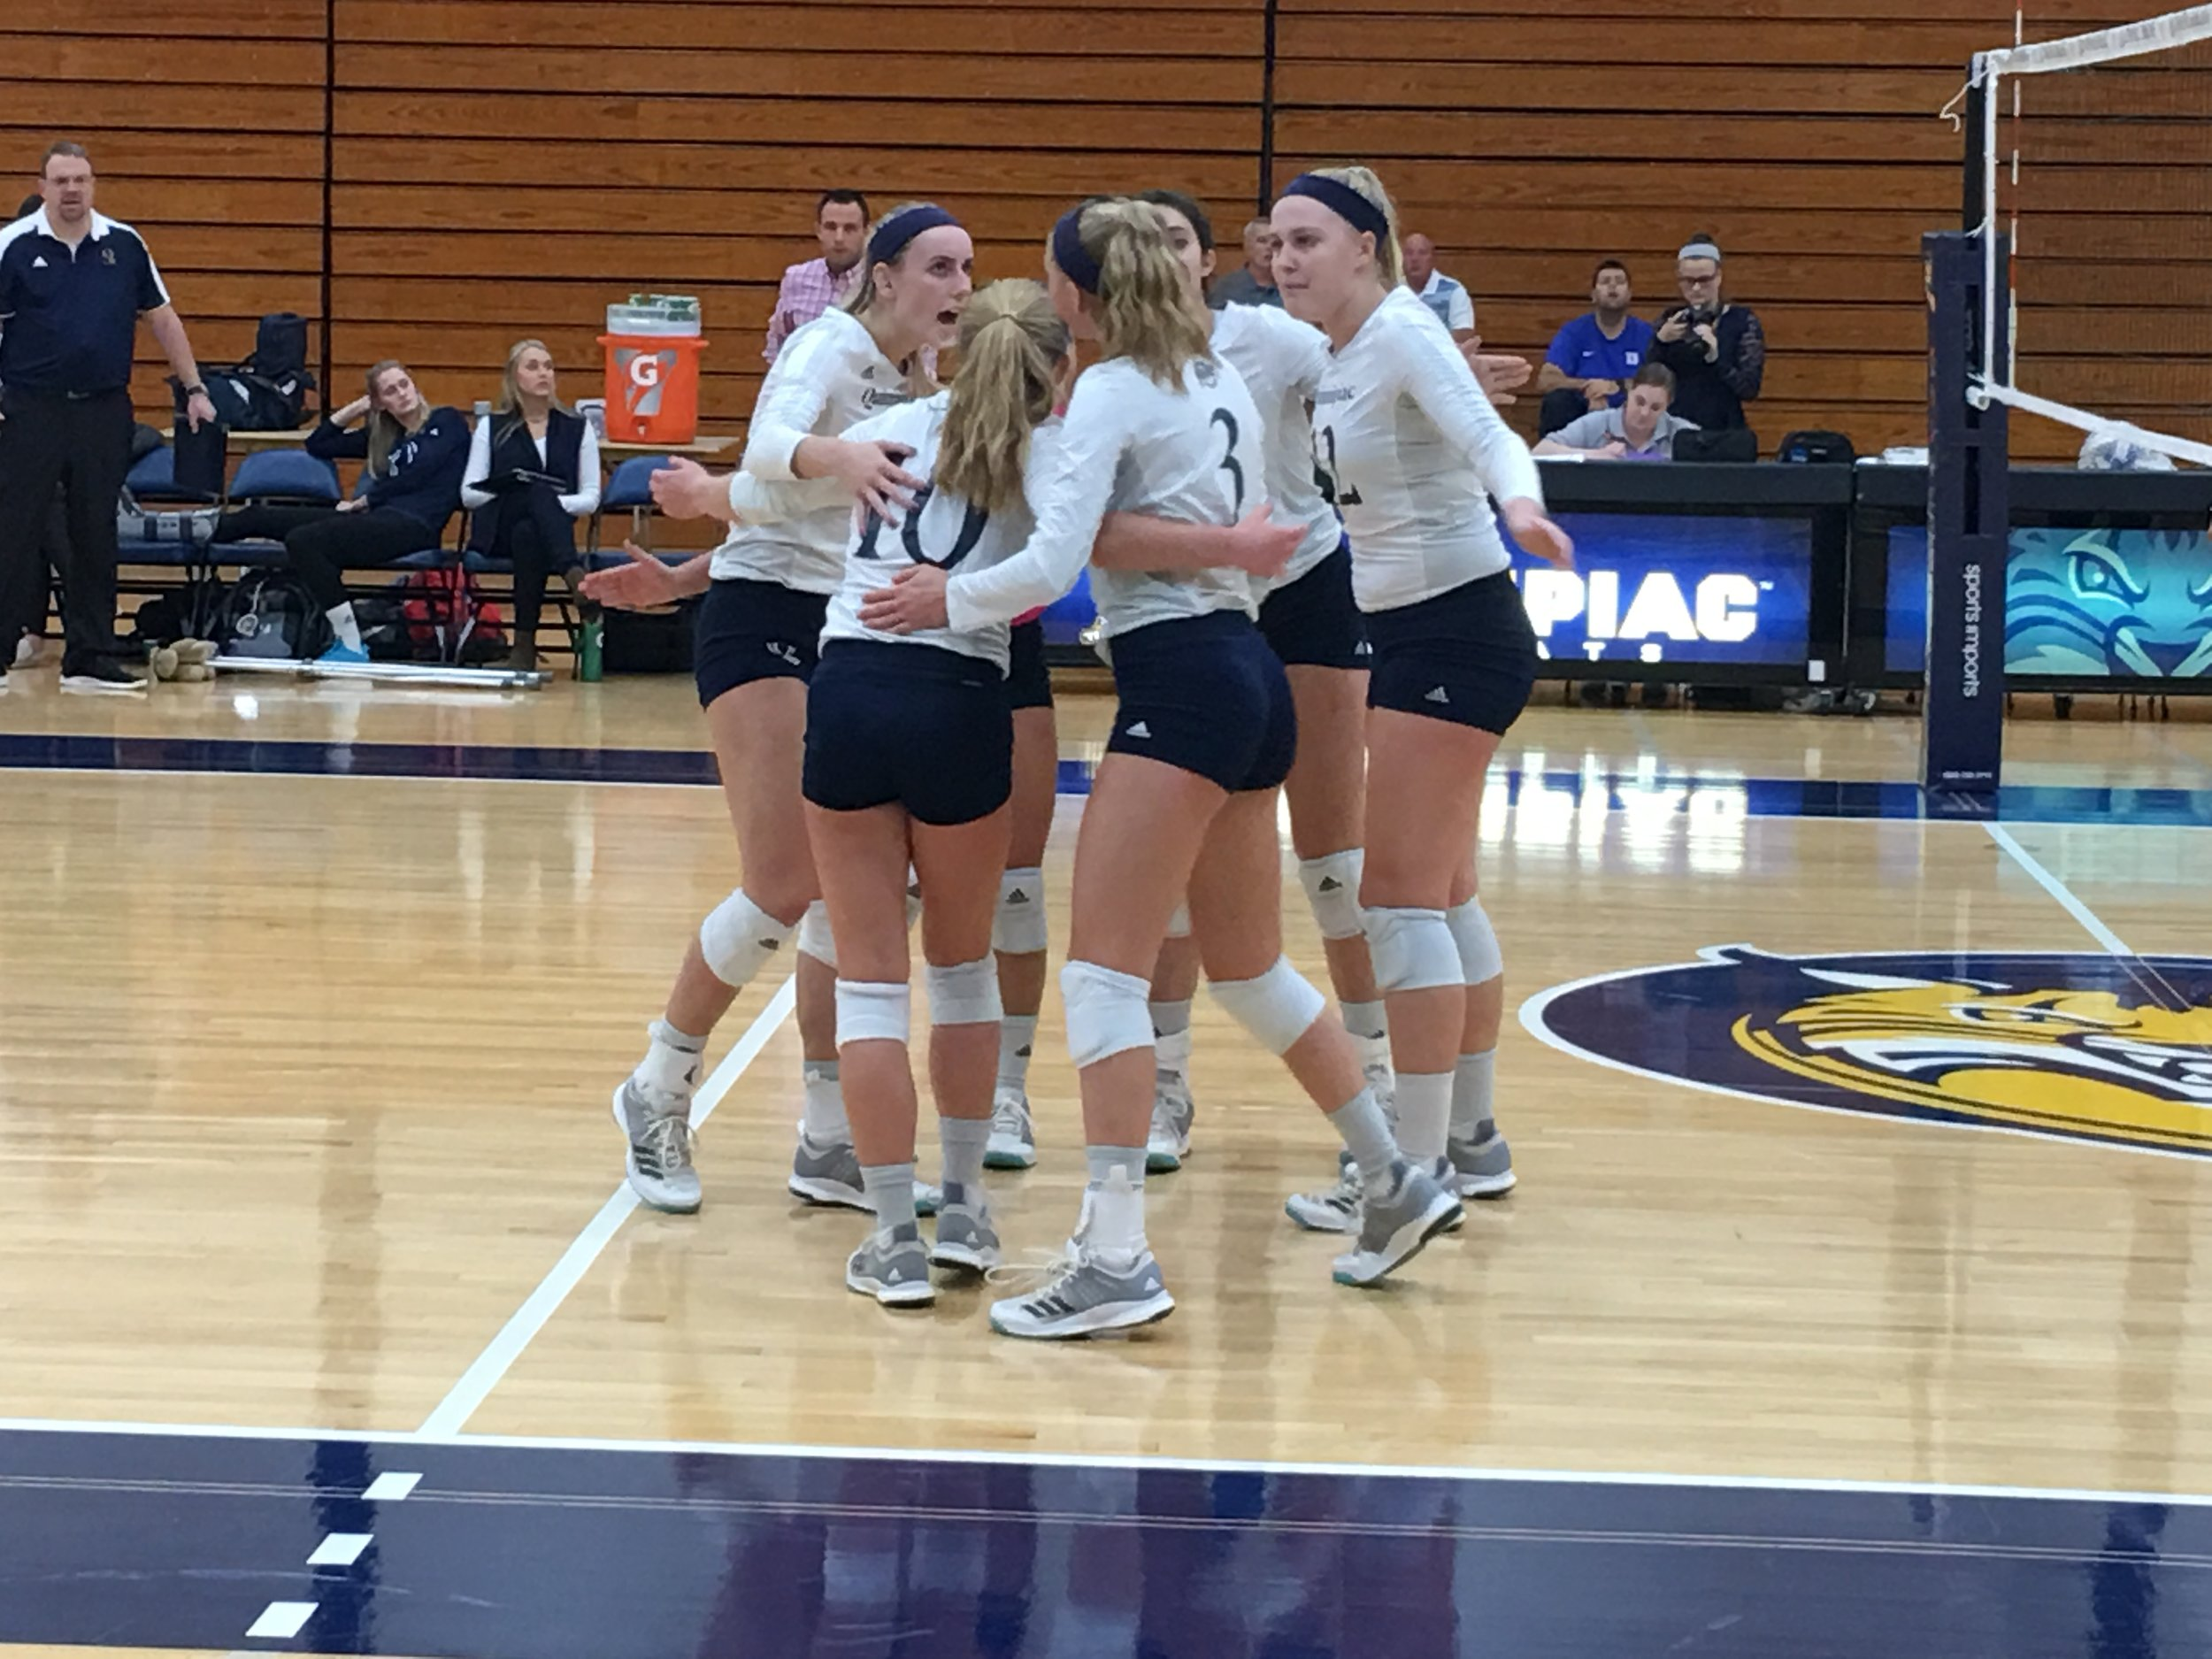 The Quinnipiac volleyball team was at the center of a Title IX lawsuit when the school announced it would cut the program in 2009